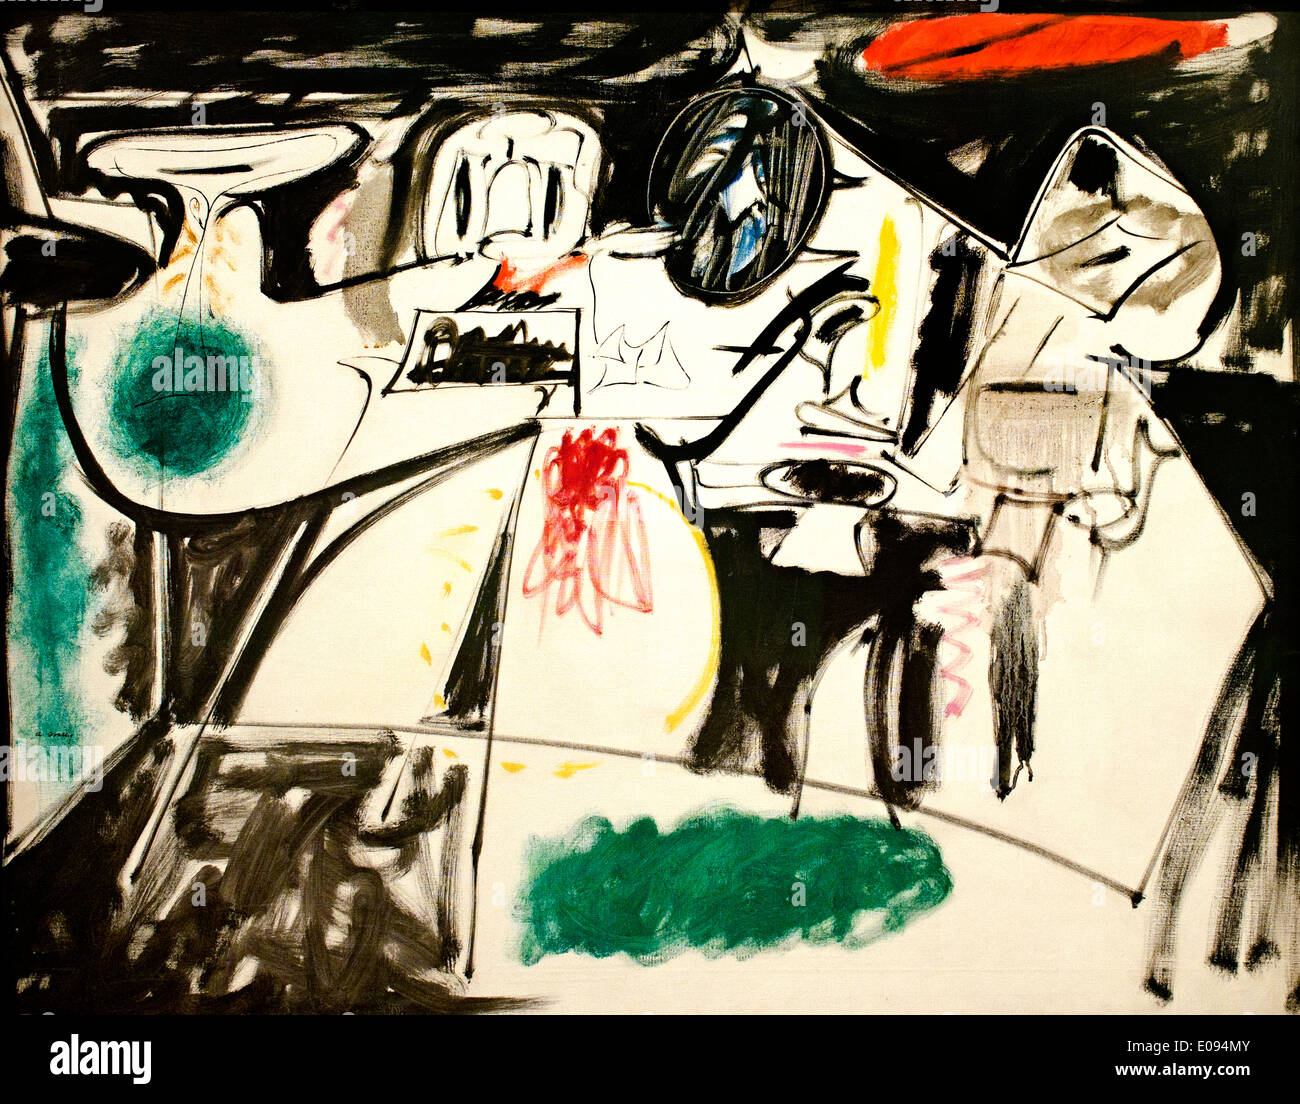 Last Painting (The Black Monk) 1948 Arshile Gorky 1905-1948 Armenia Armenian - Stock Image